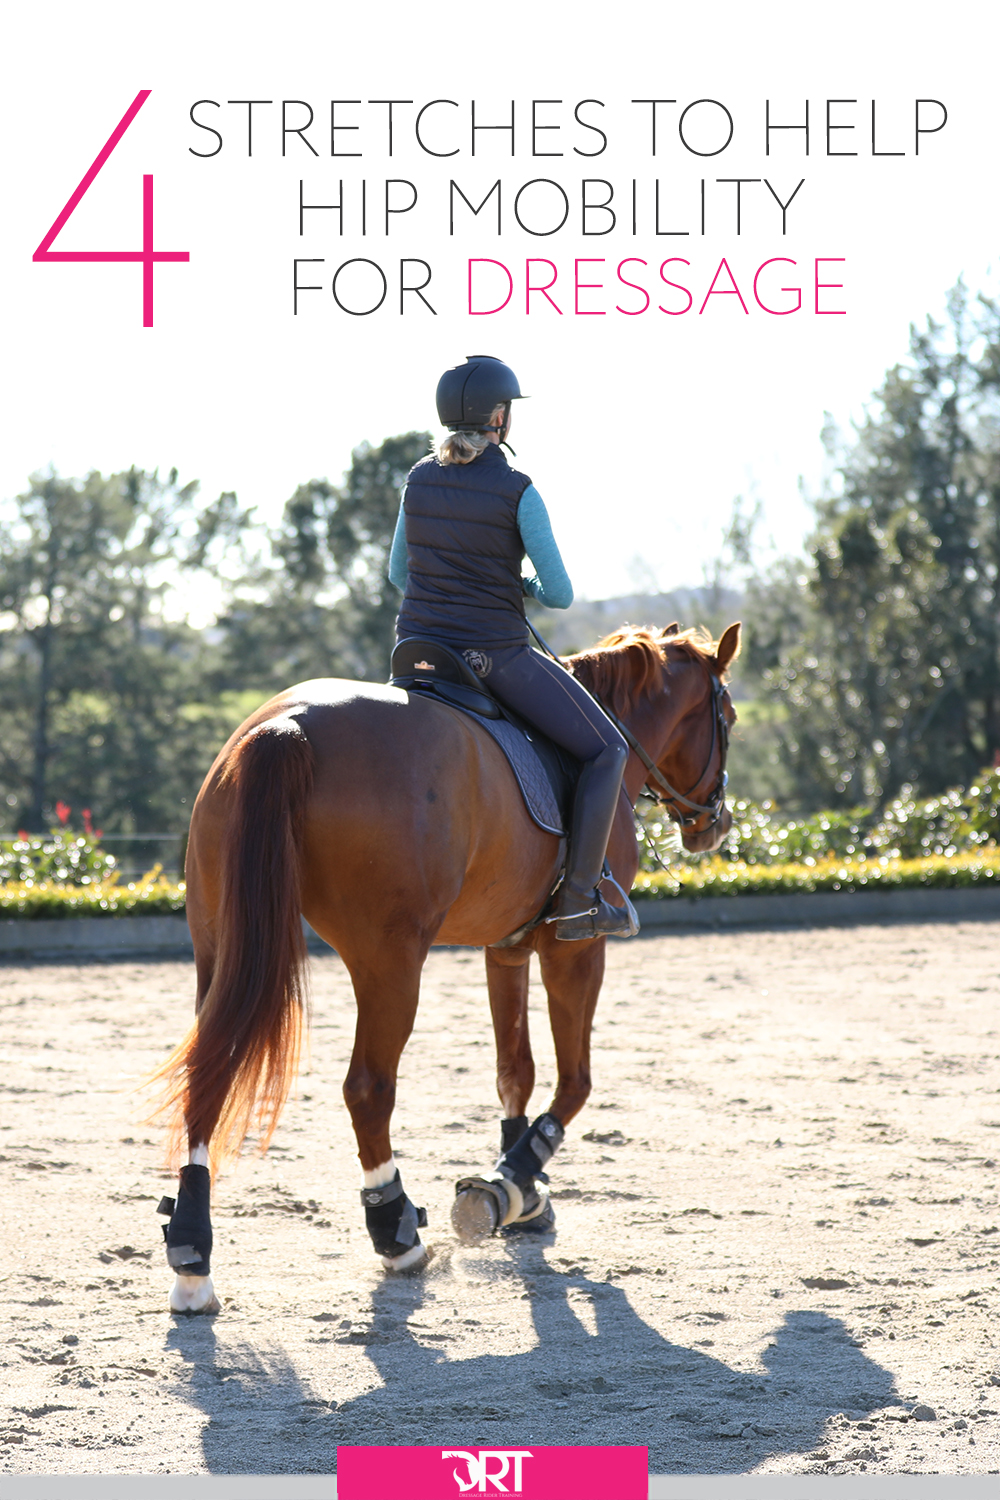 Heres a video explaining 4 stretches to help you with your hip mobility. #dressage #dressagerider #dressagetraining